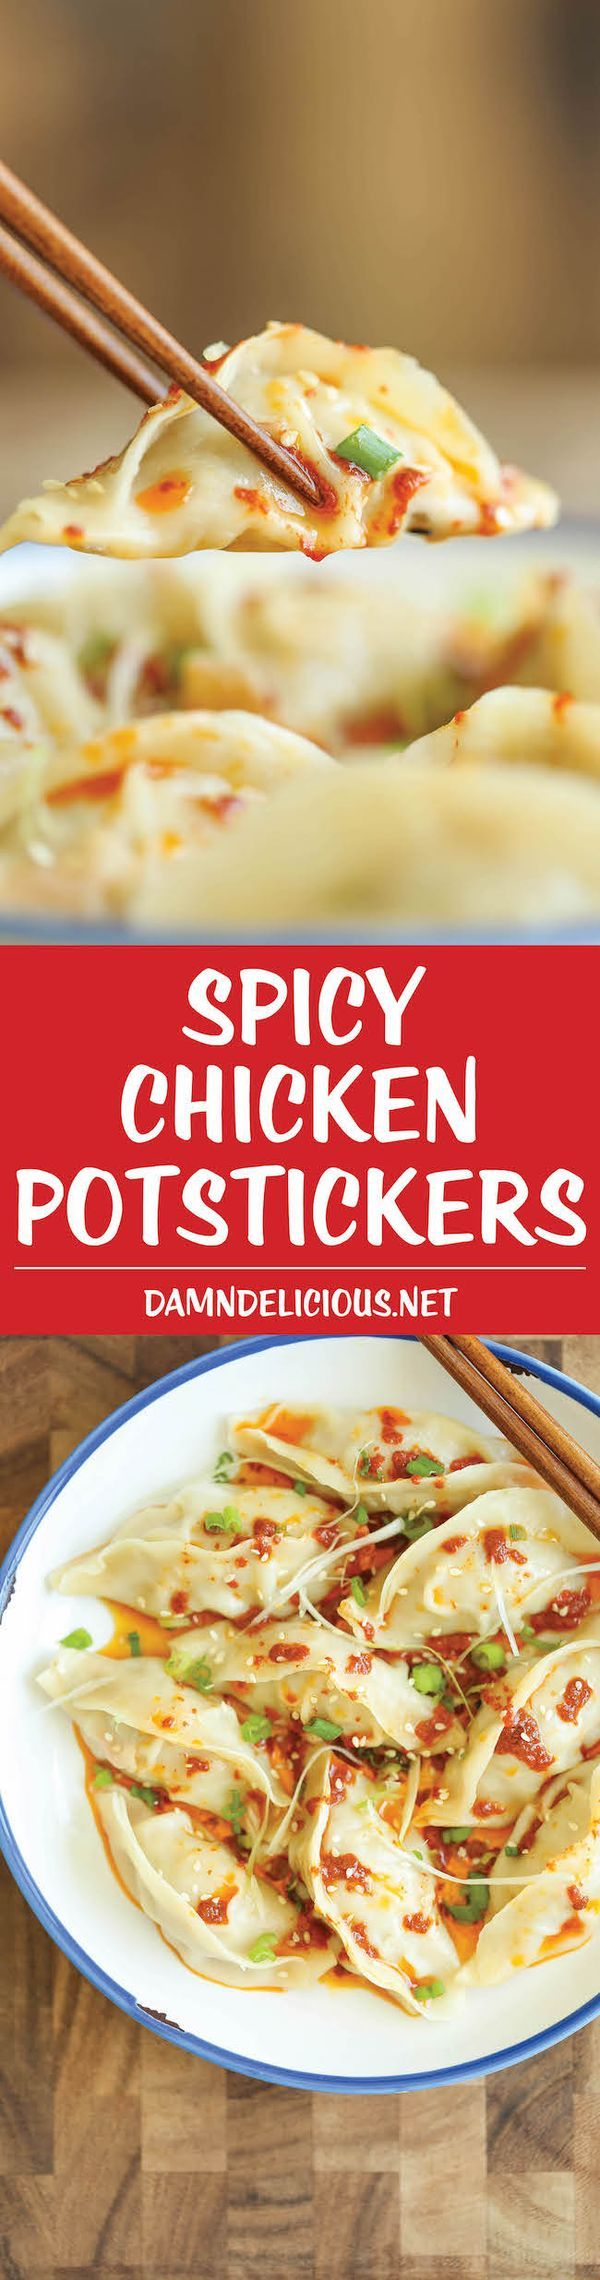 Spicy Chicken Potstickers Recipe (With images) Spicy